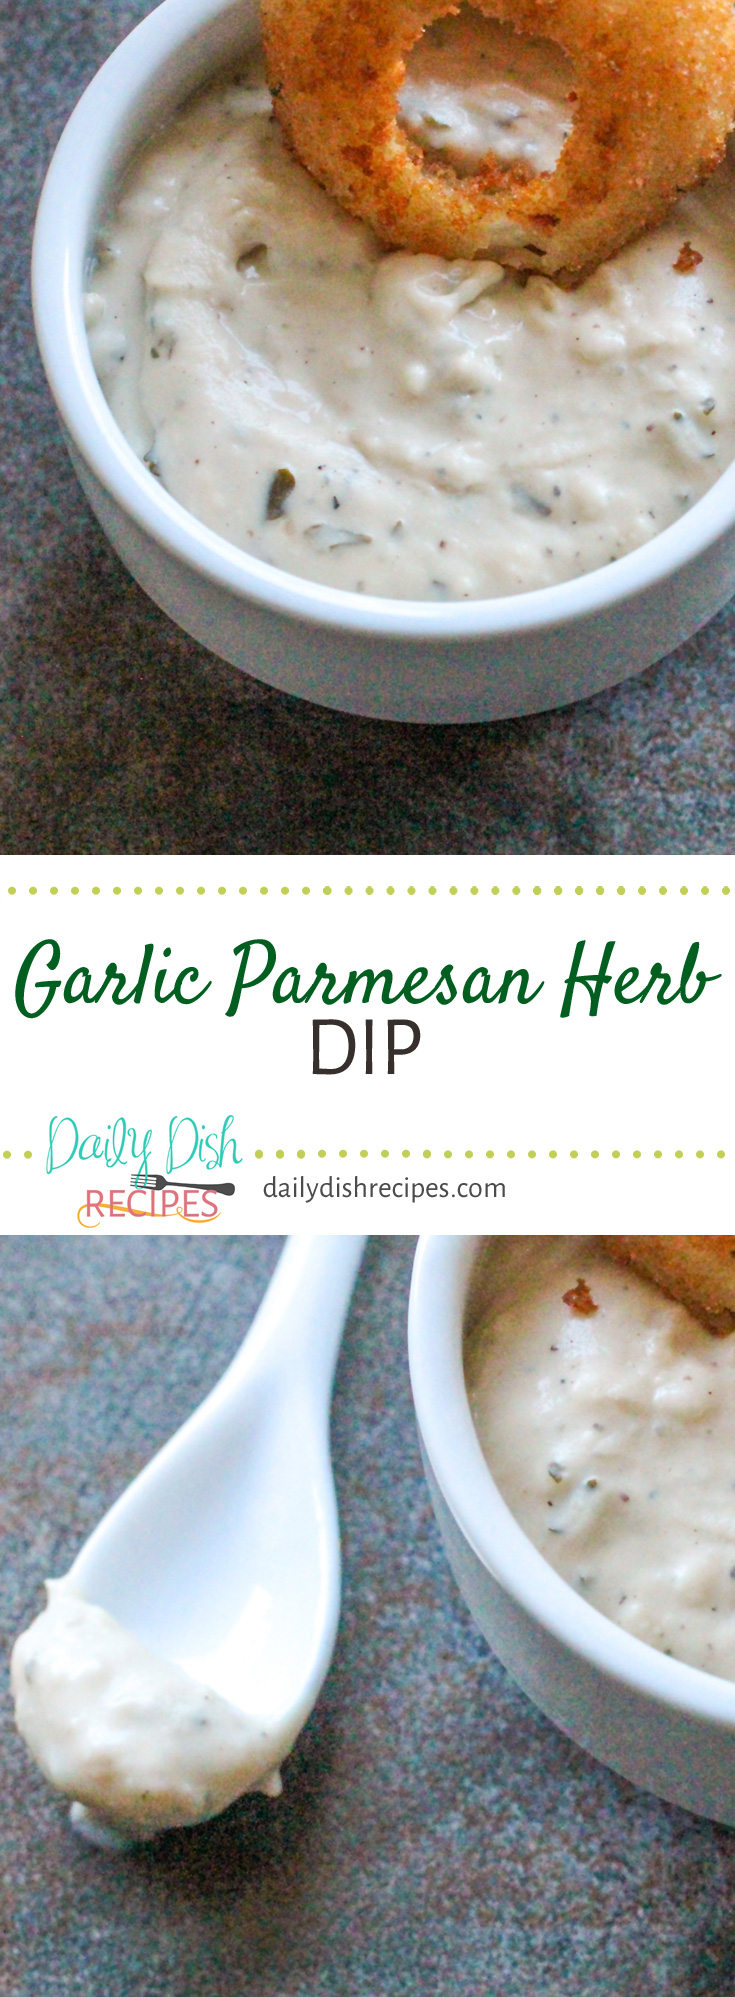 Creamy, Garlicky, Cheesy Dippable goodness in this Garlic Parmesan Herb Dip that goes great with chips, pretzels, bread, veggies, served with steak, chicken, seafood or tossed in a salad. A favorite dip!